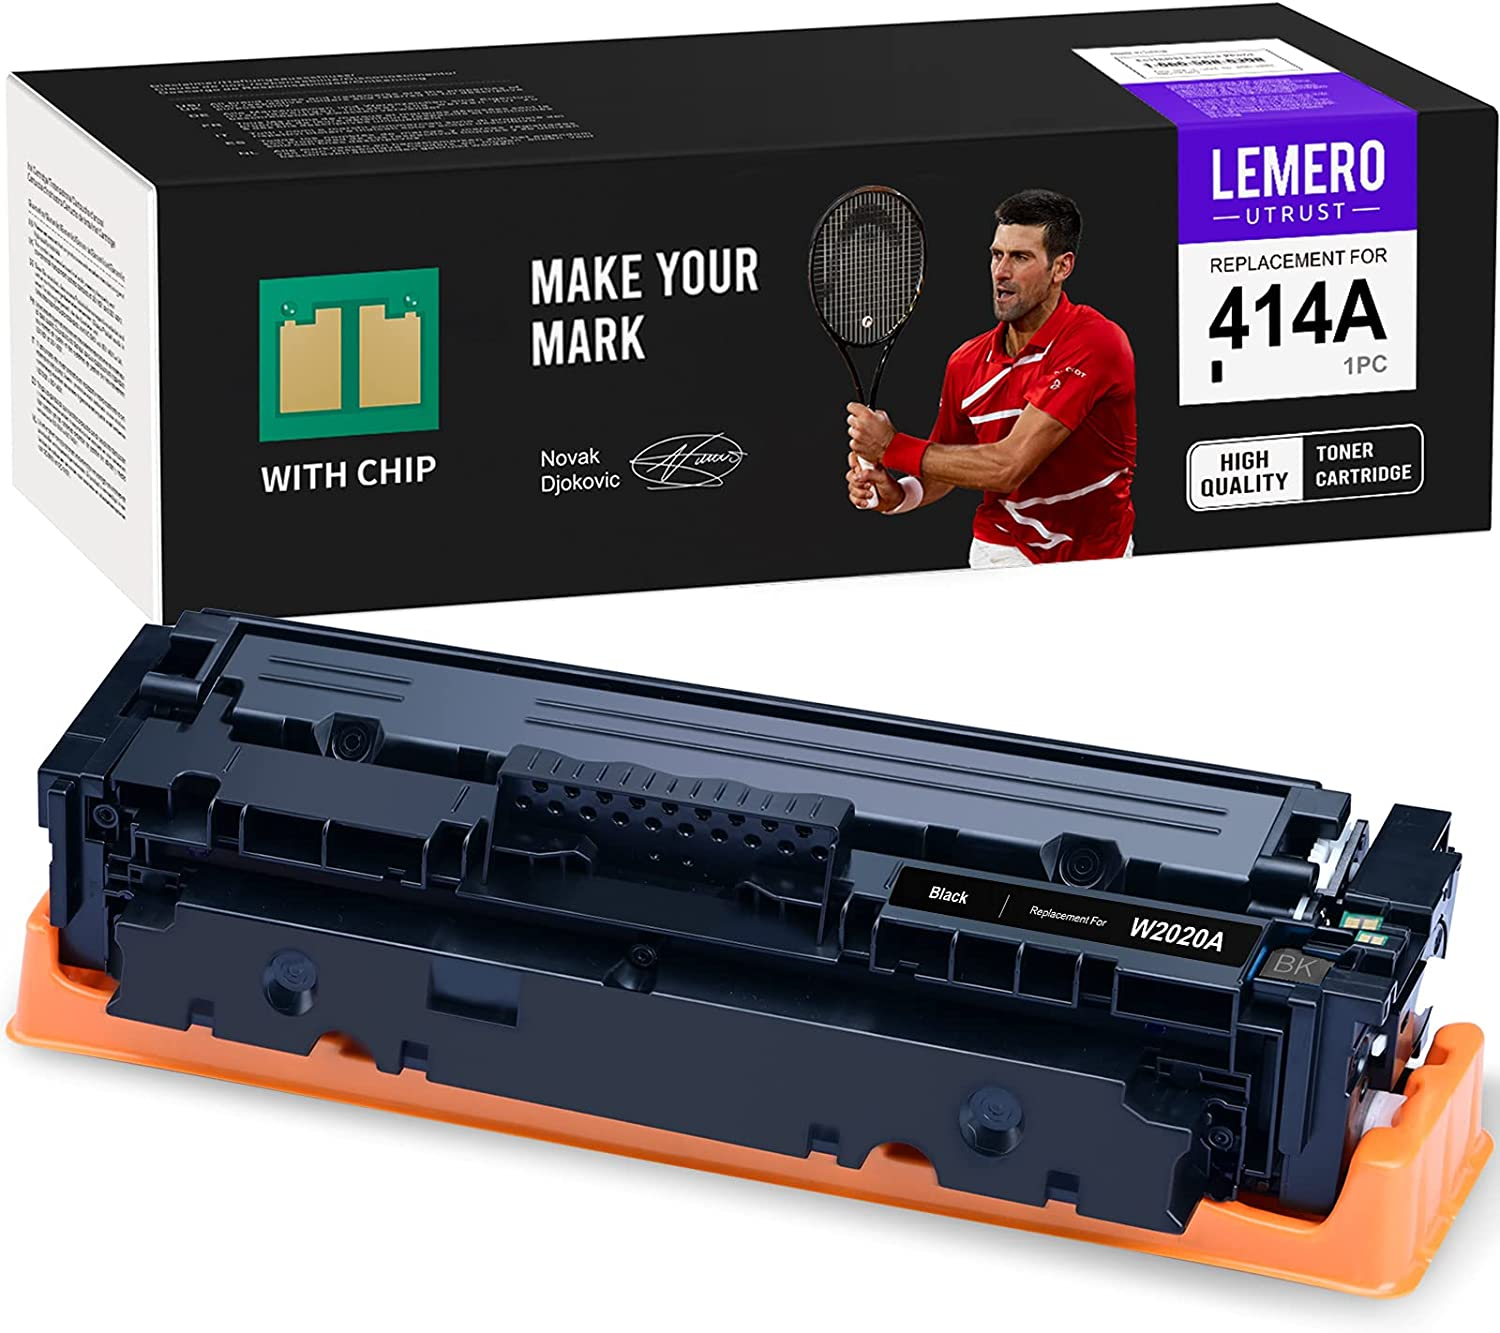 LEMEROUTRUST (with Chip) Remanufactured Toner Cartridge Replacement for HP 414A W2020A use with HP Color Laserjet Pro M454dw M454dn MFP M479fdw M479fdn (Black, 1-Pack)